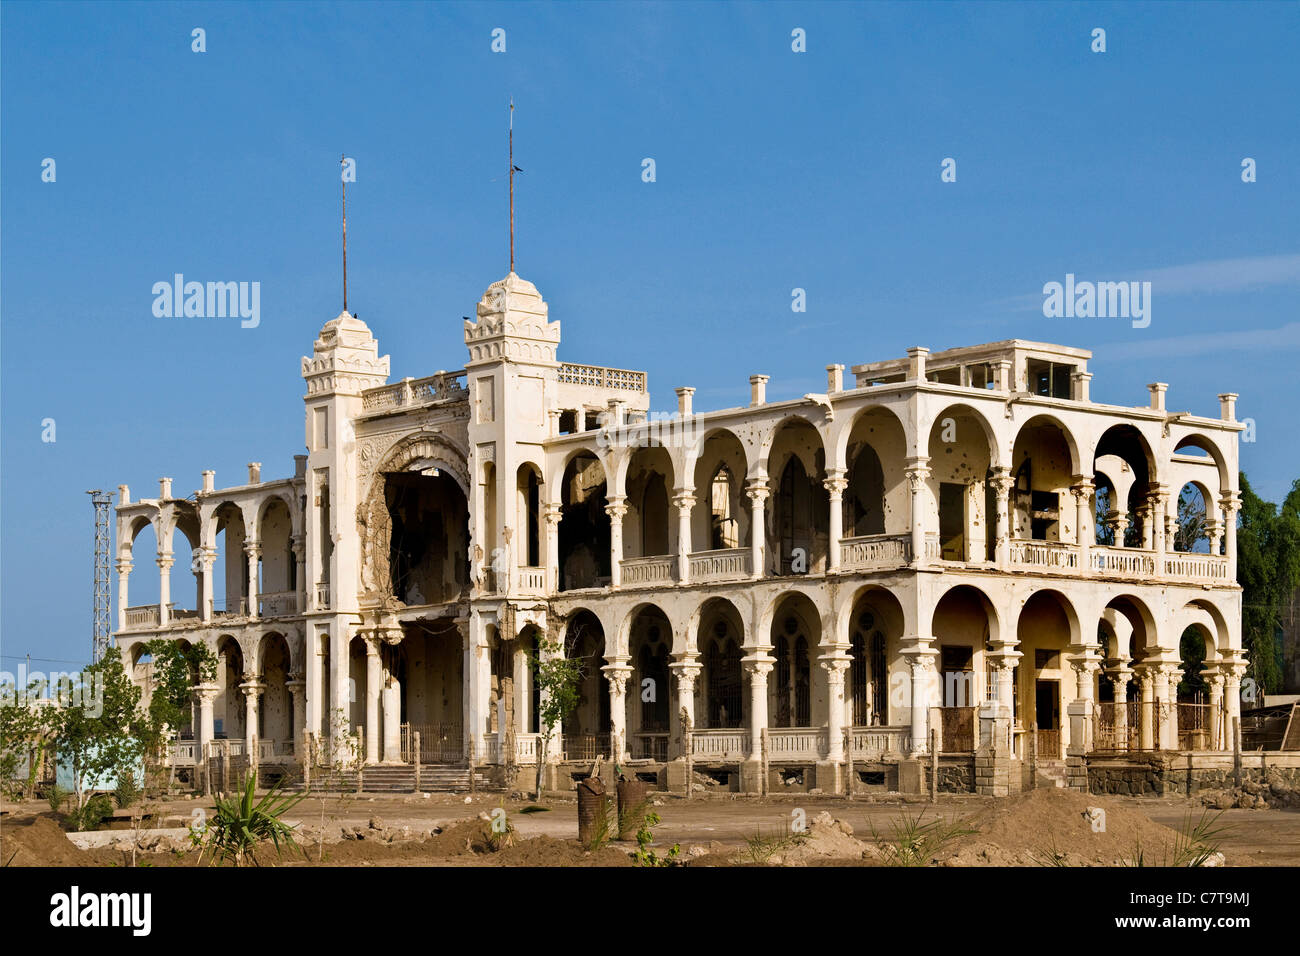 Africa, Eritrea, Massawa, the Italian bank building - Stock Image